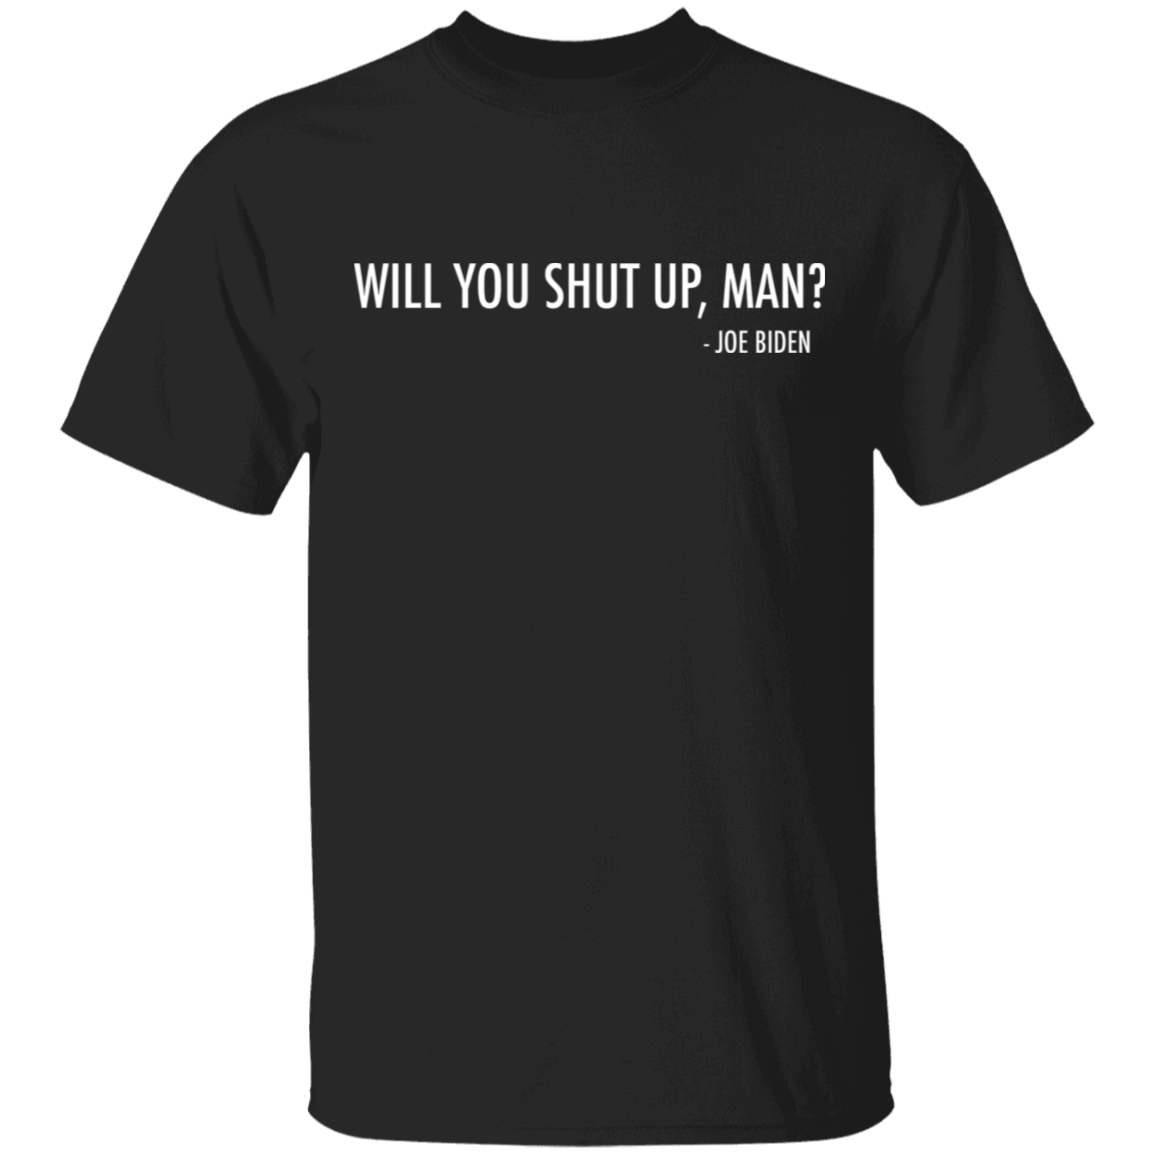 Joe Biden Will You Shut Up Man Shirt Vote Biden 2020 Election T-Shirt